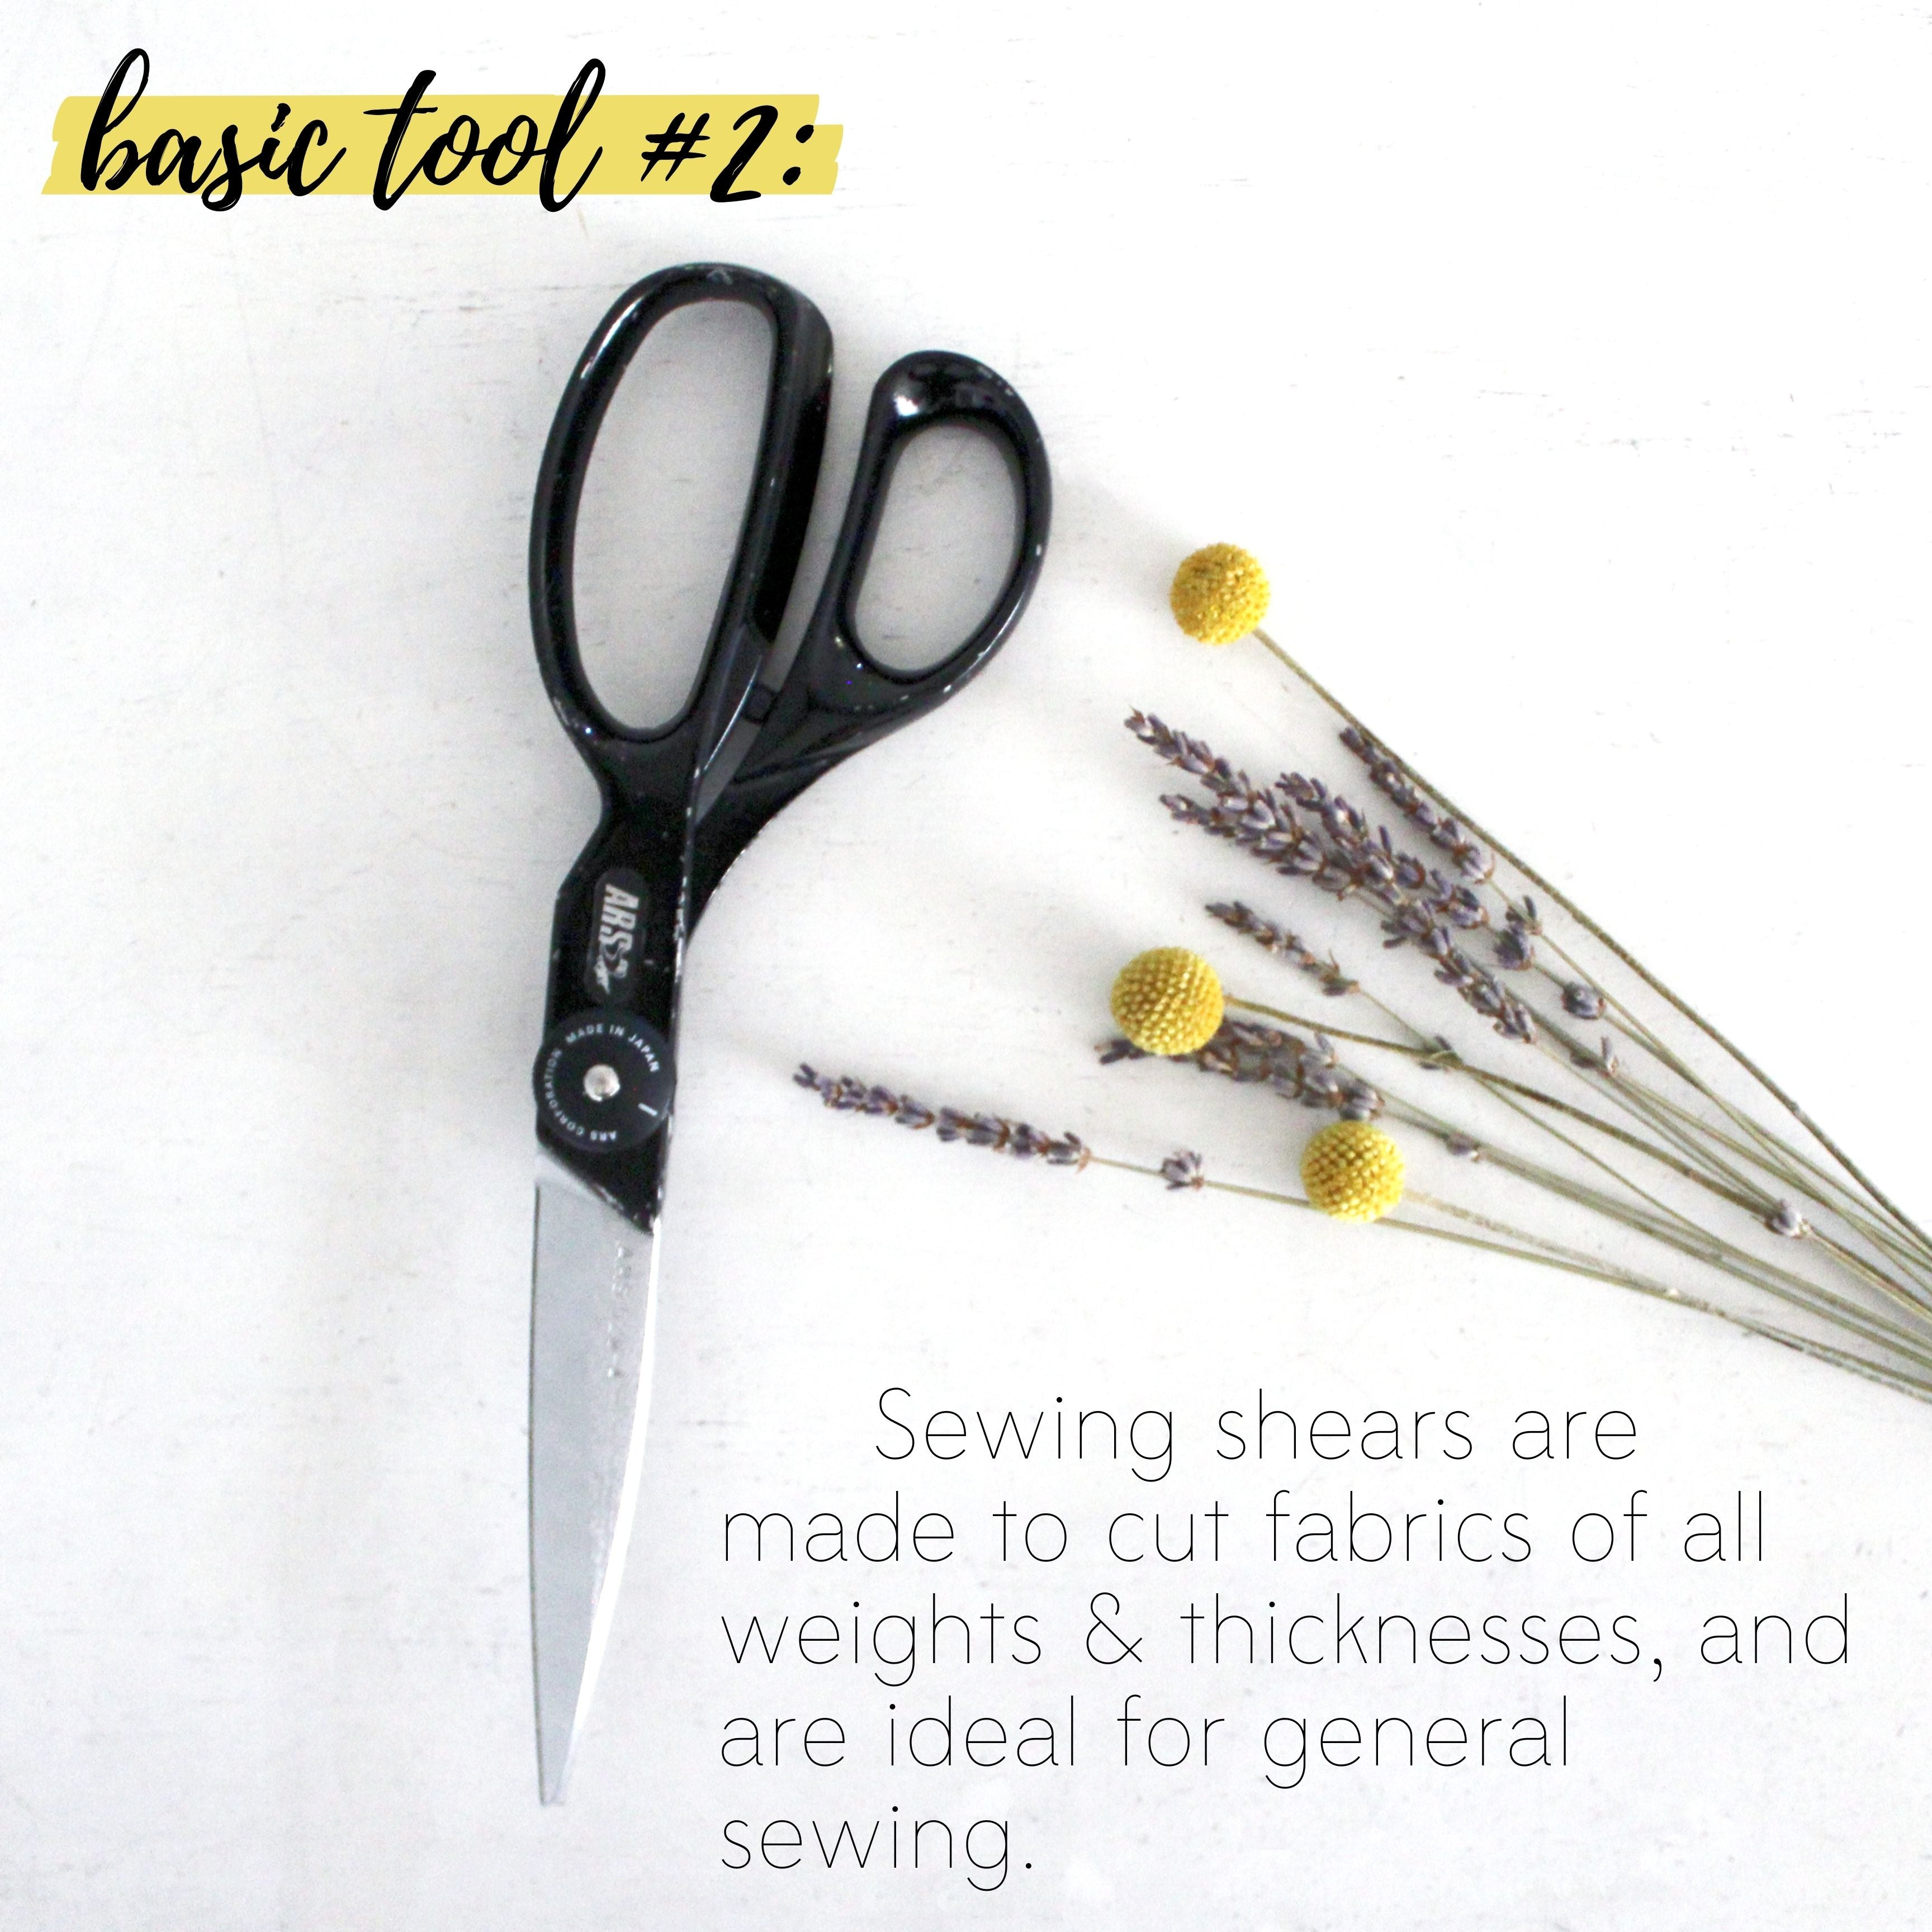 How To Build A Sewing Kit: Basic Tool #2, Fabric Scissors